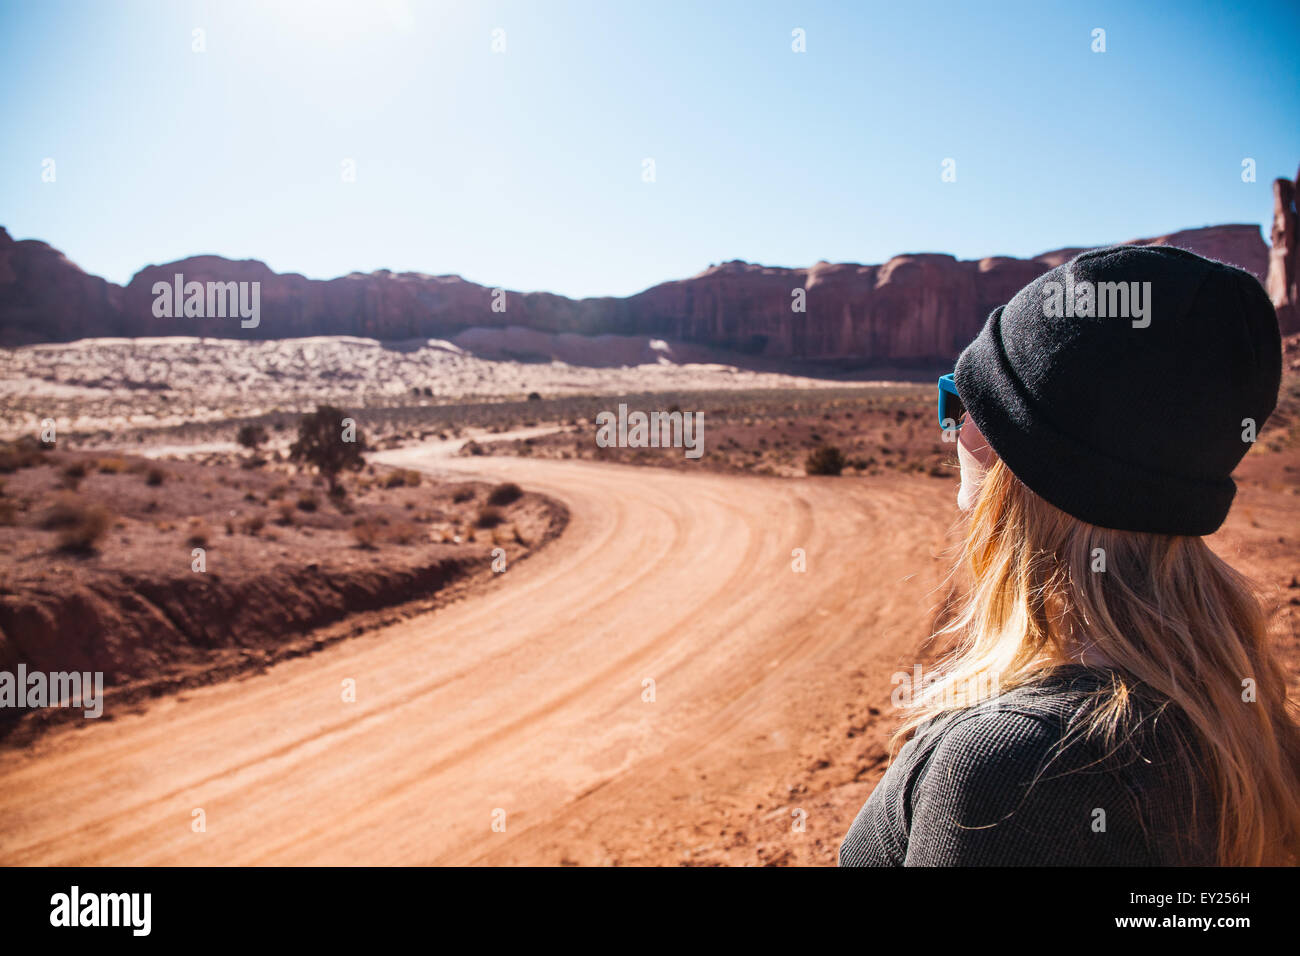 Mid adult woman looking out at rural dirt road, Monument Valley, Utah, USA - Stock Image